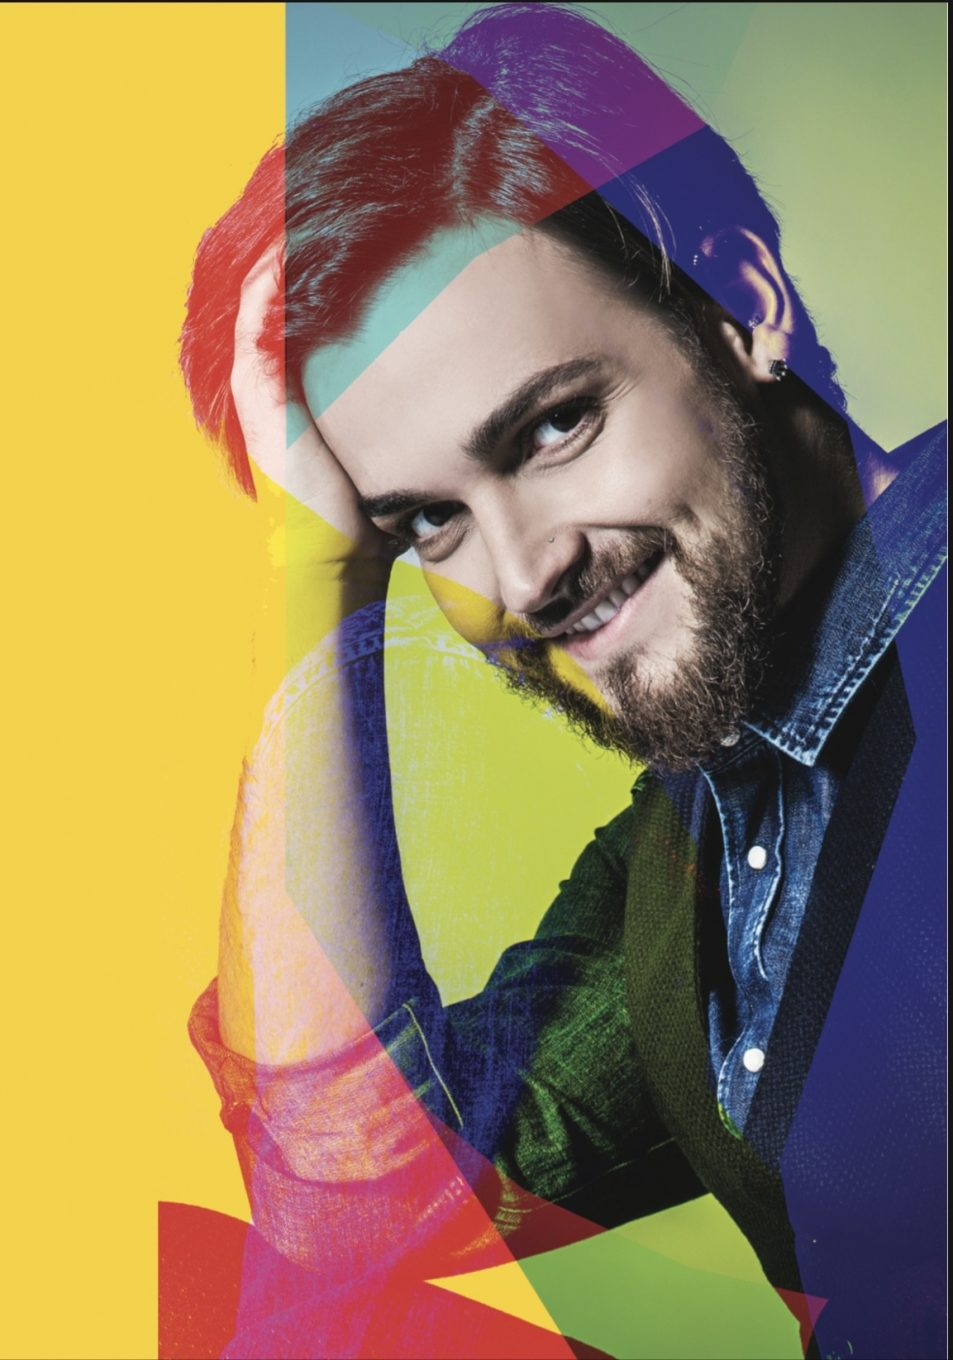 Valerio Scanu torna in tour